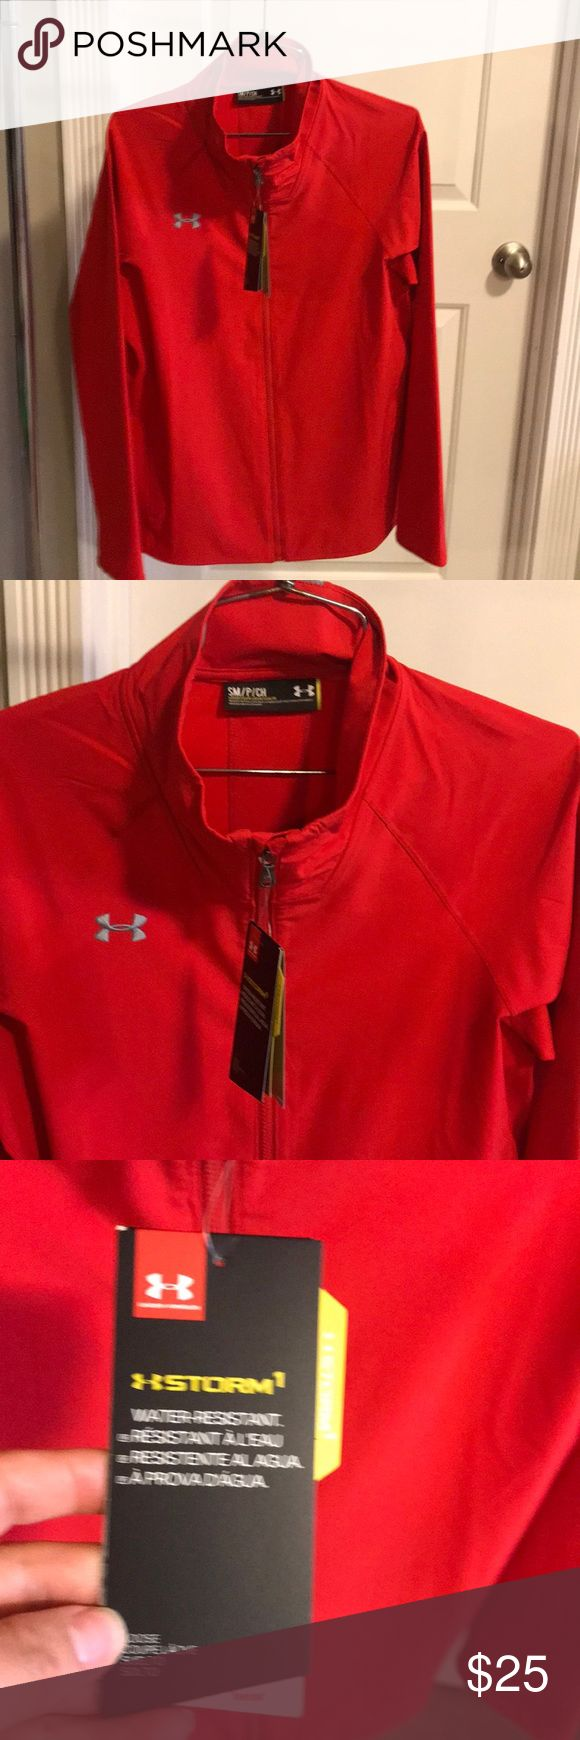 Women's Under Armour Jacket!!! Women's Under Armour weather resistant jacket!!! Brand New💕💕💕 Under Armour Jackets & Coats